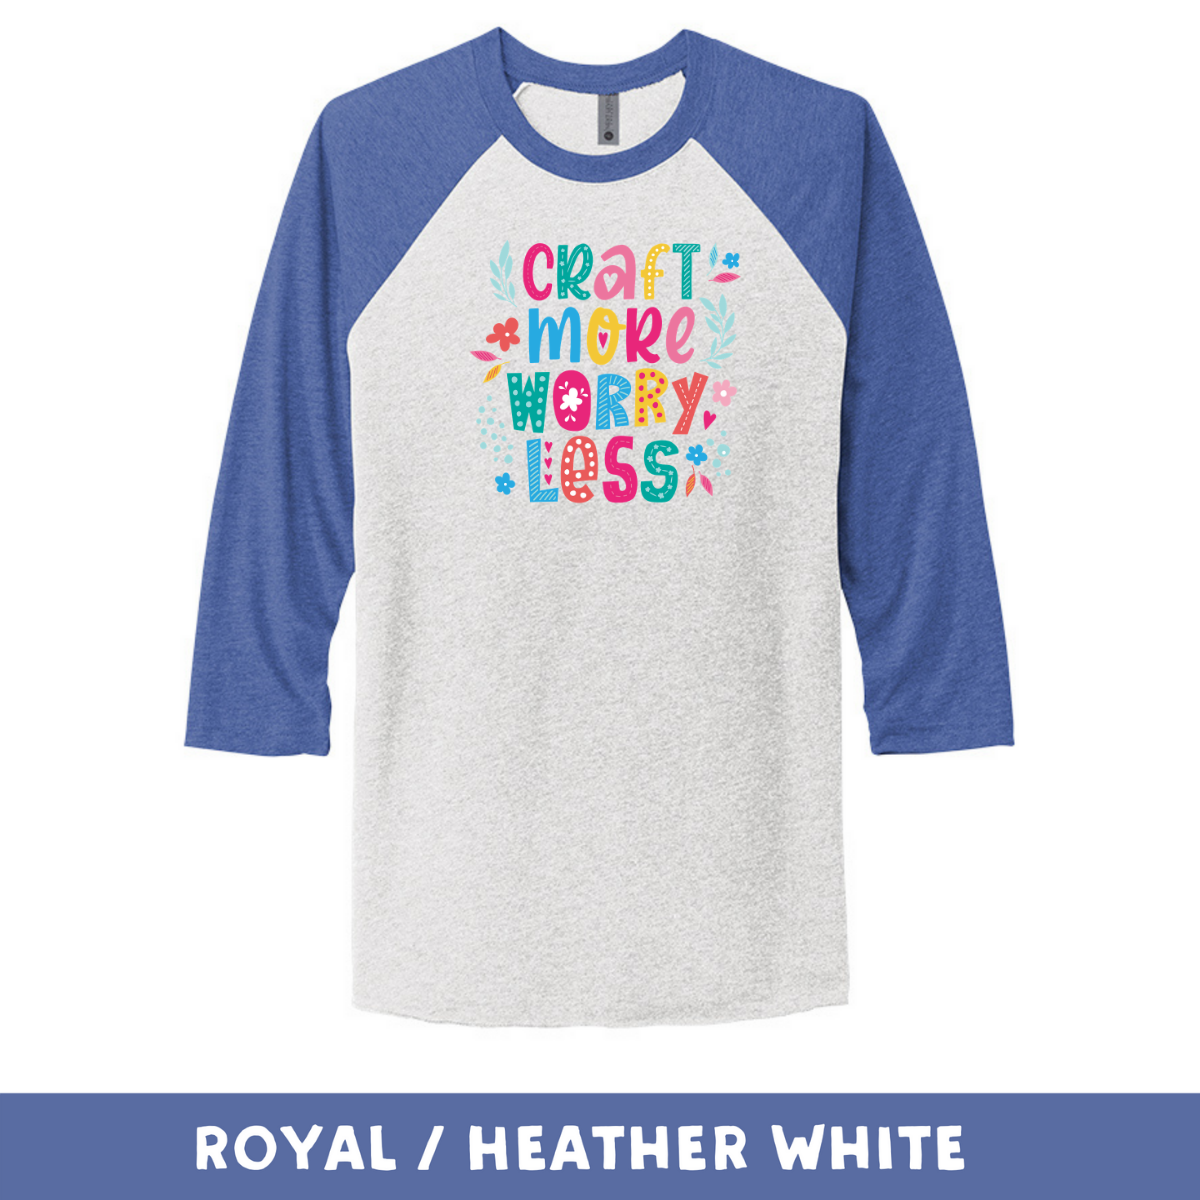 Royal Heather White - Unisex Tri-Blend 3/4 Sleeve Raglan Tee - Craft More Worry Less